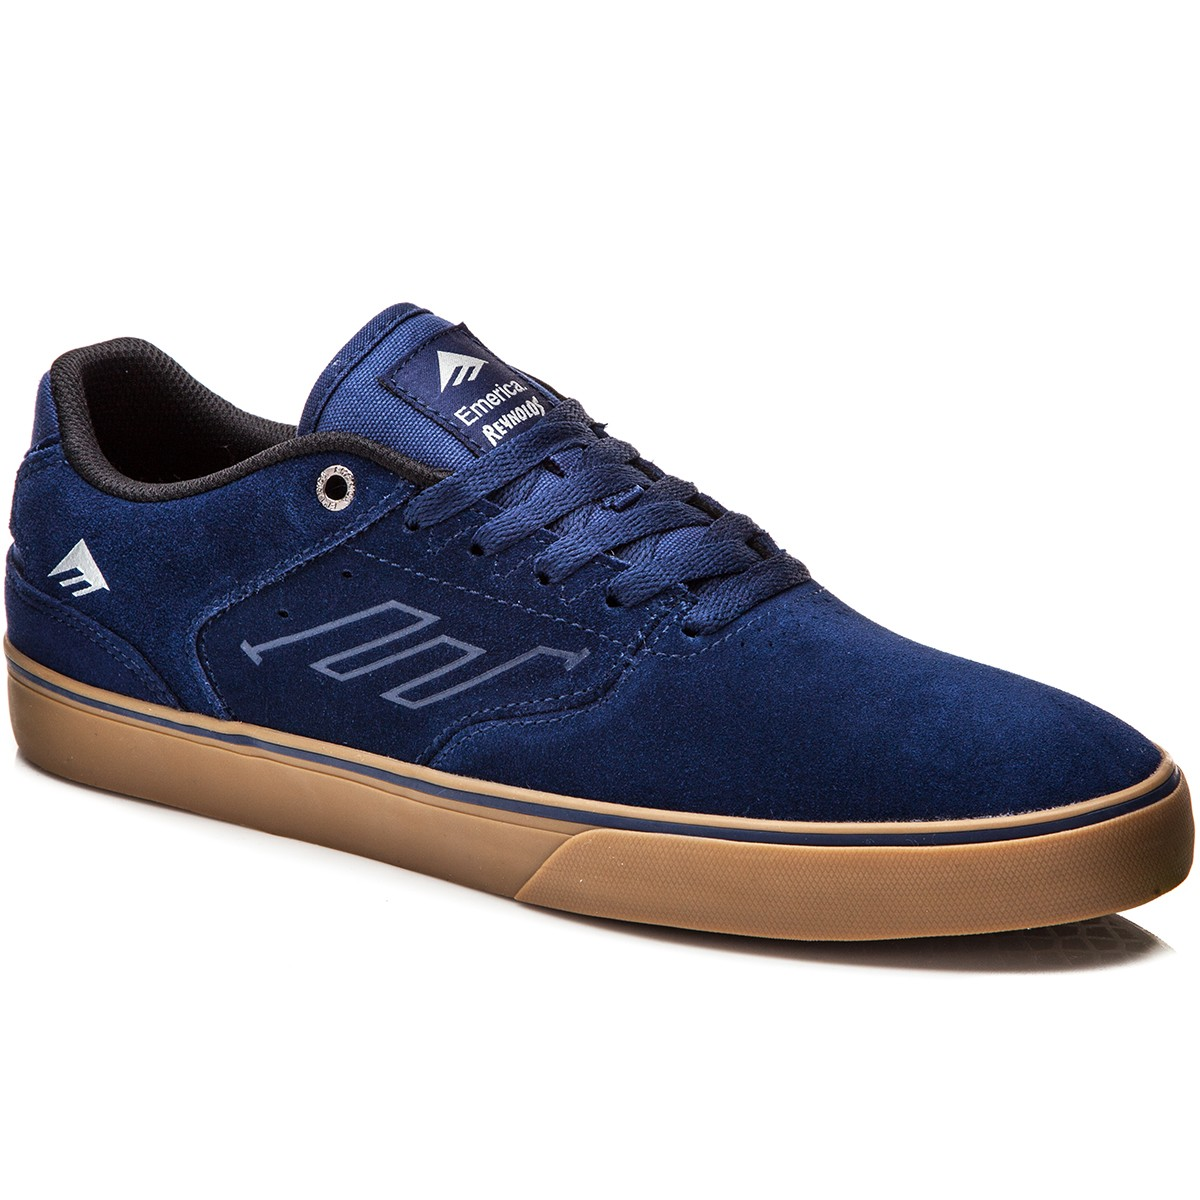 The Reynolds Low Vulc Skate Shoes blue / white / gum Emerica j8i043QiSN